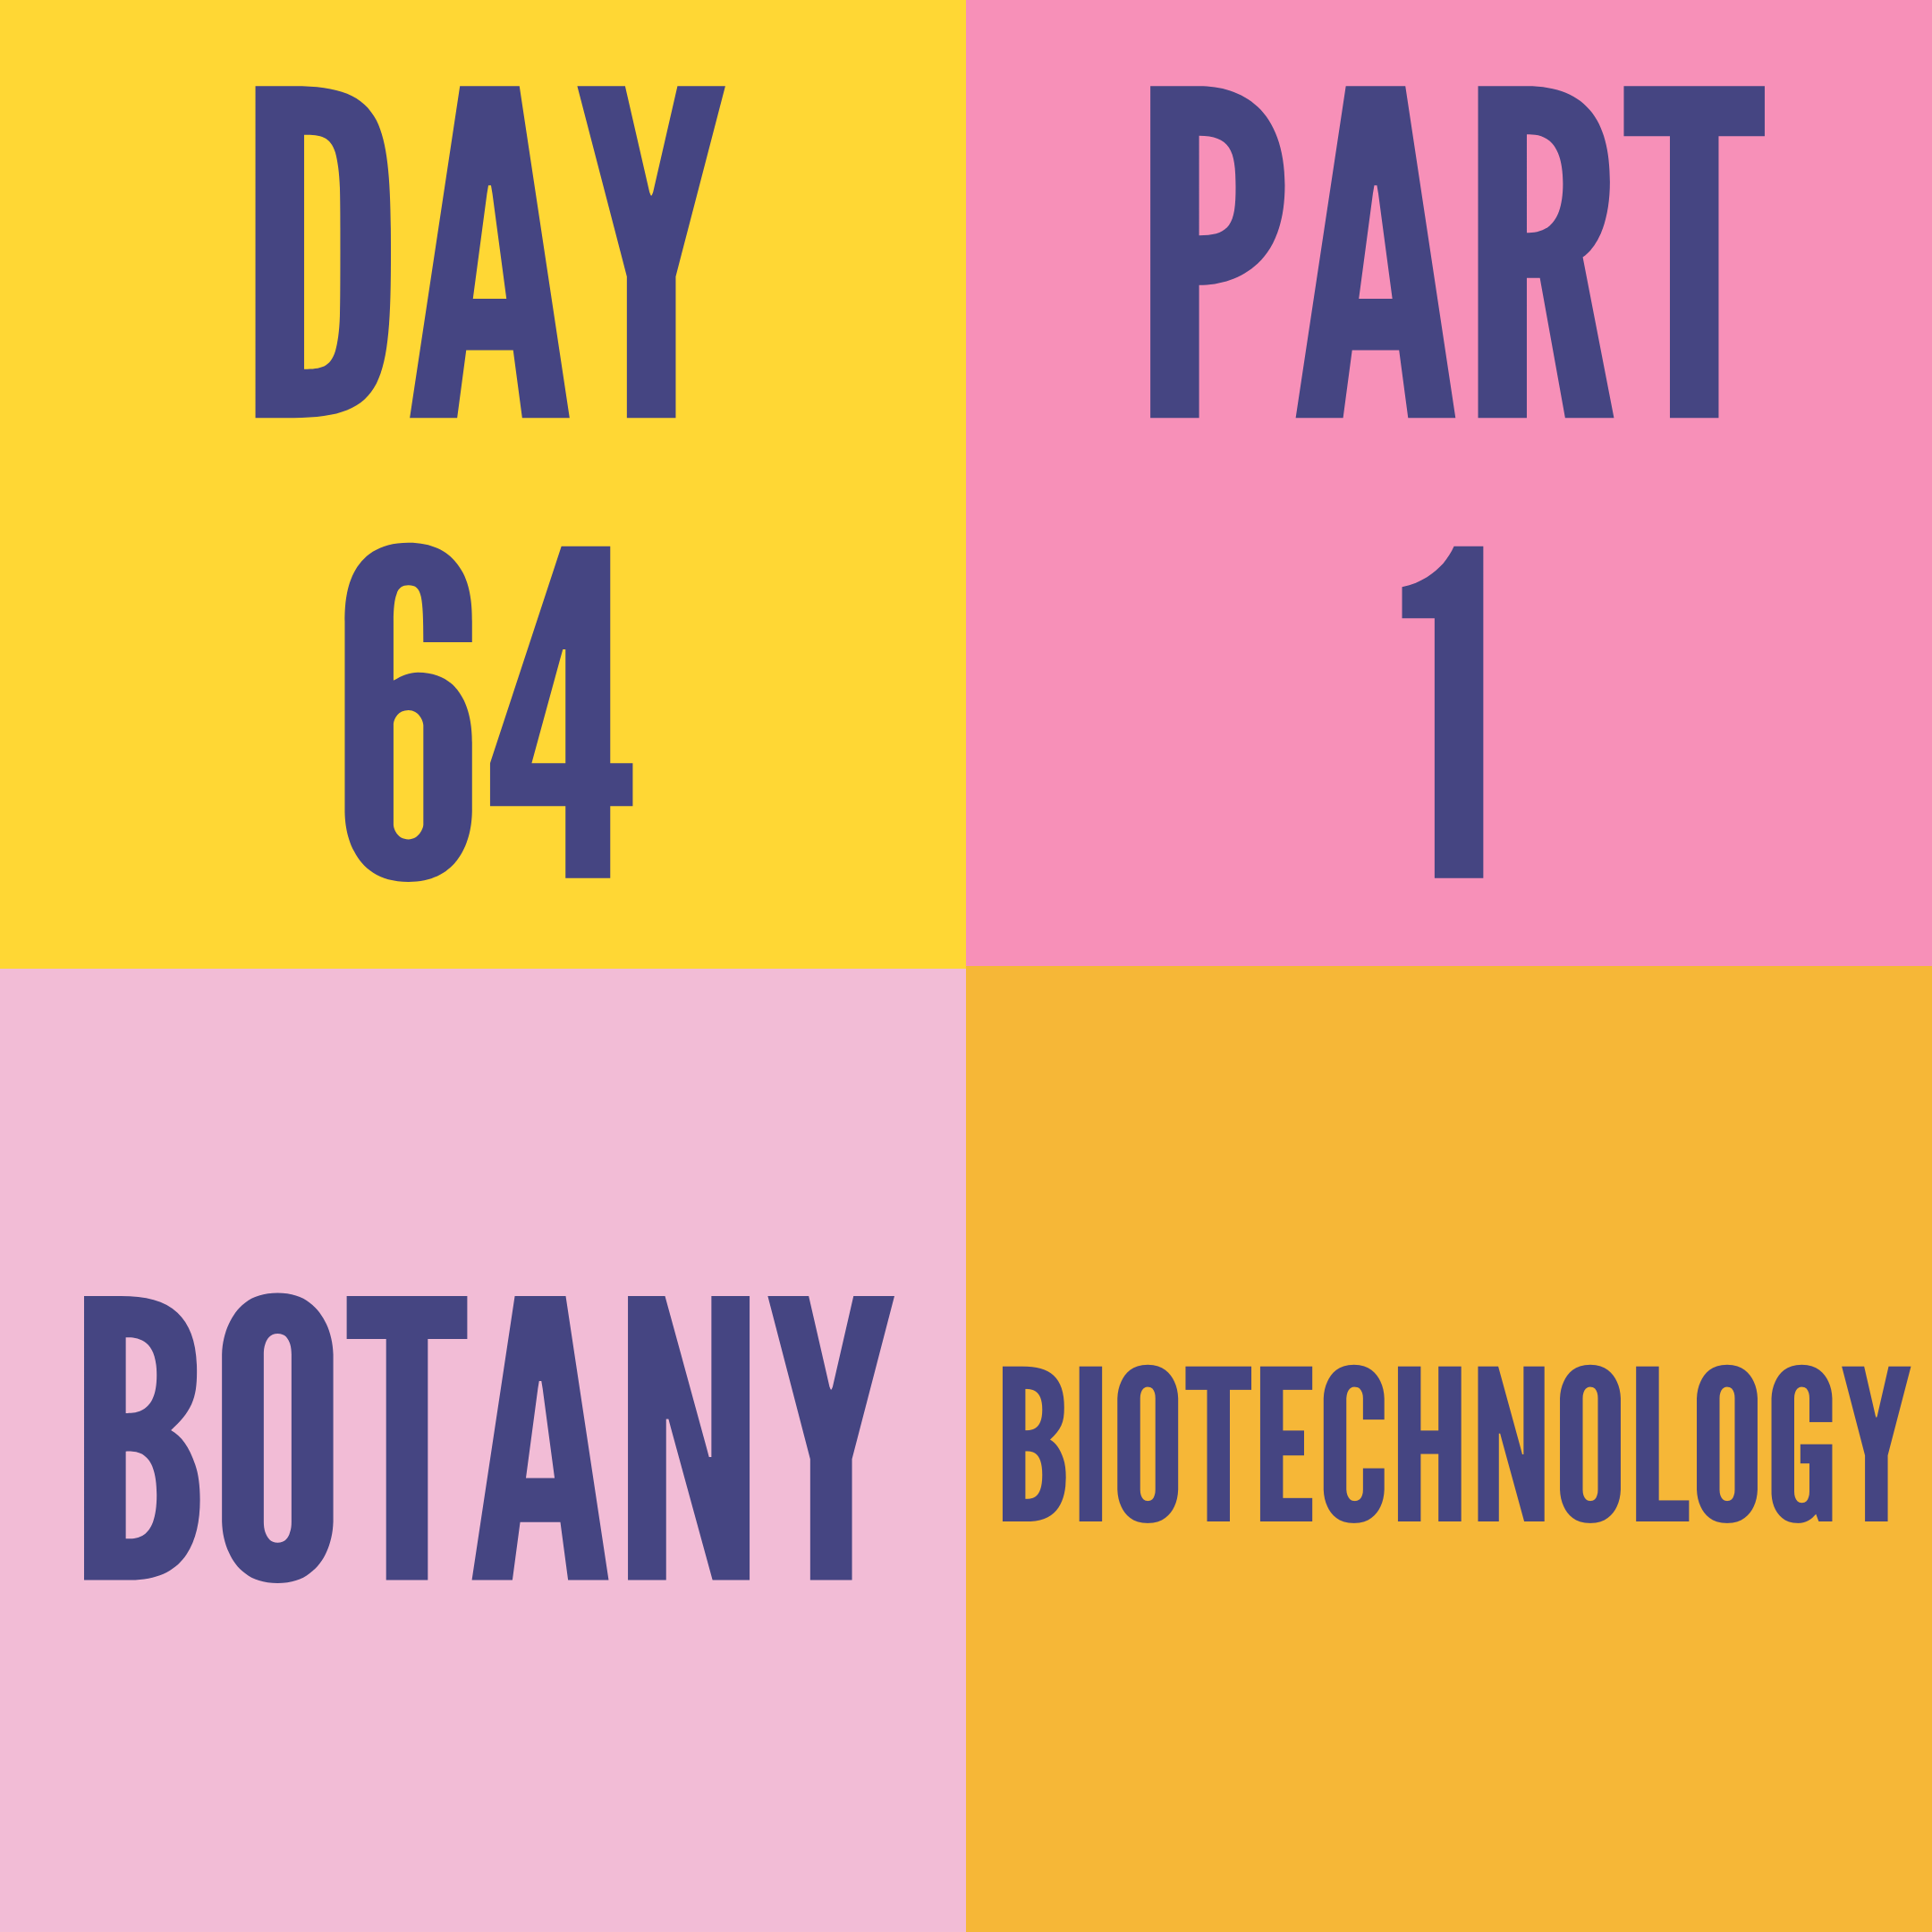 DAY-64 PART-1 BIOTECHNOLOGY